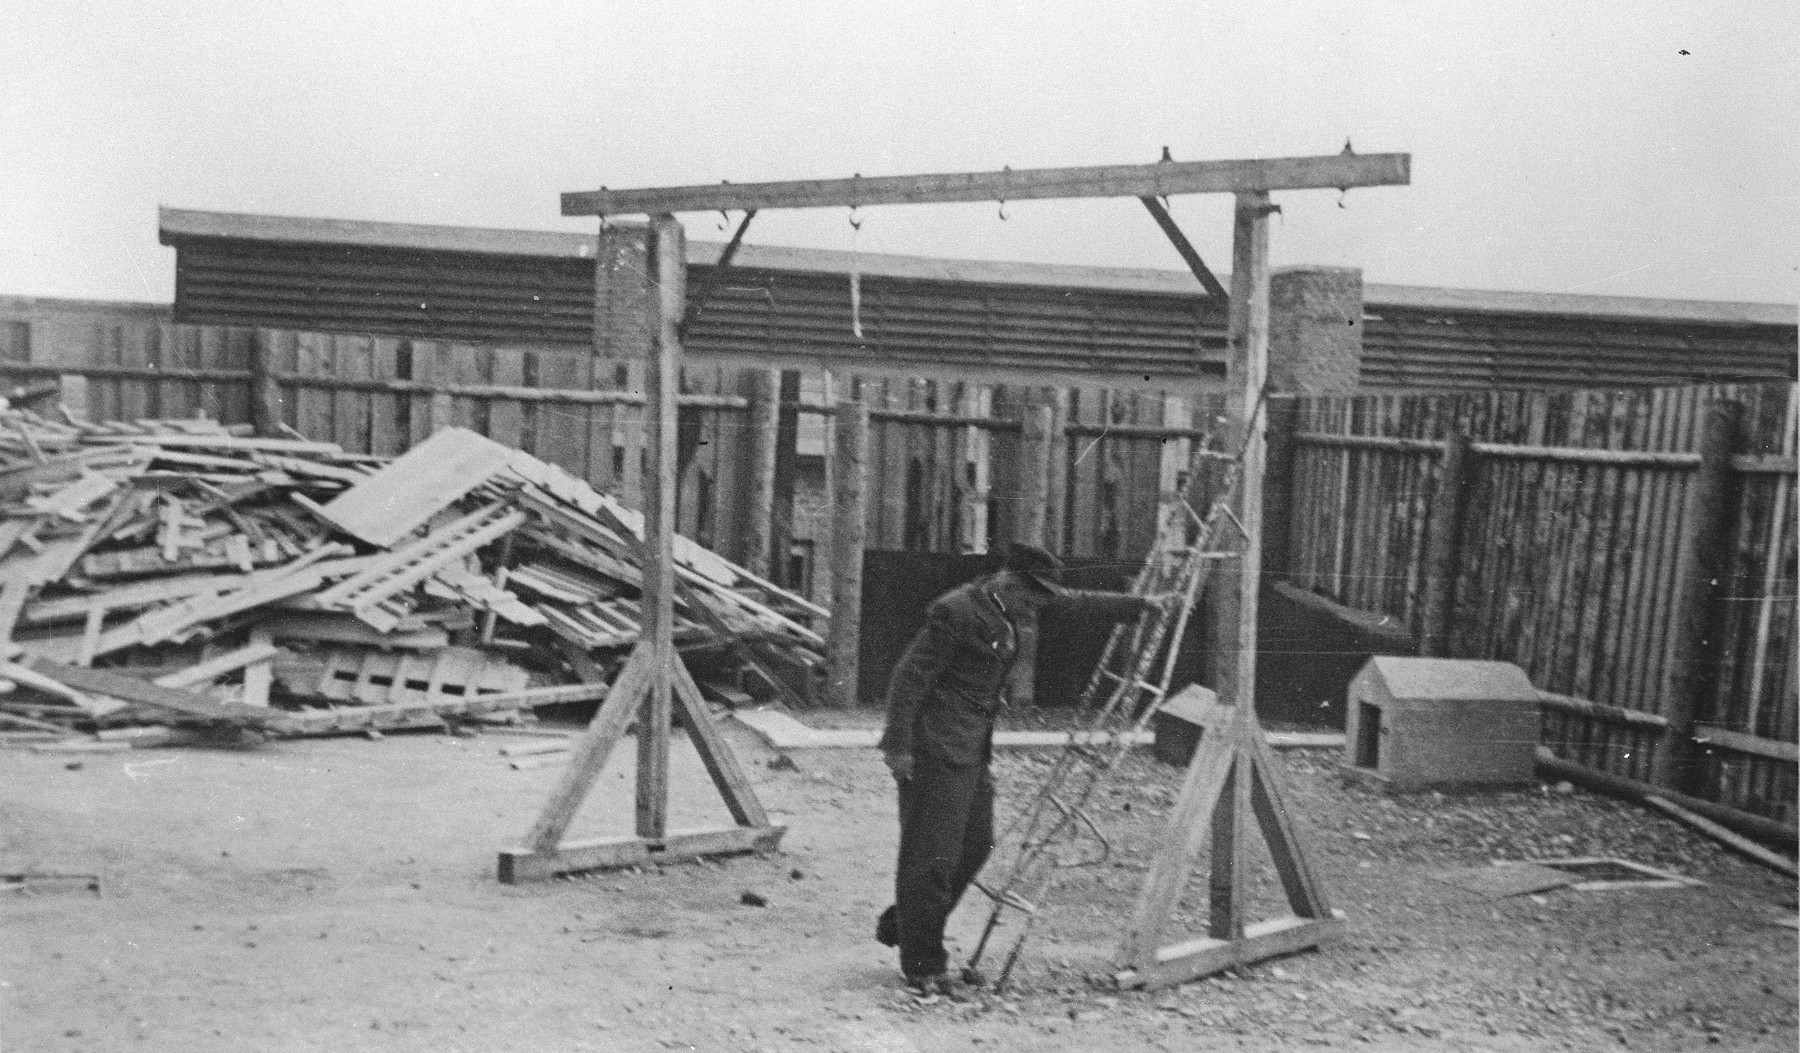 A former prisoner poses next to the gallows in the newly liberated Buchenwald concentration camp.